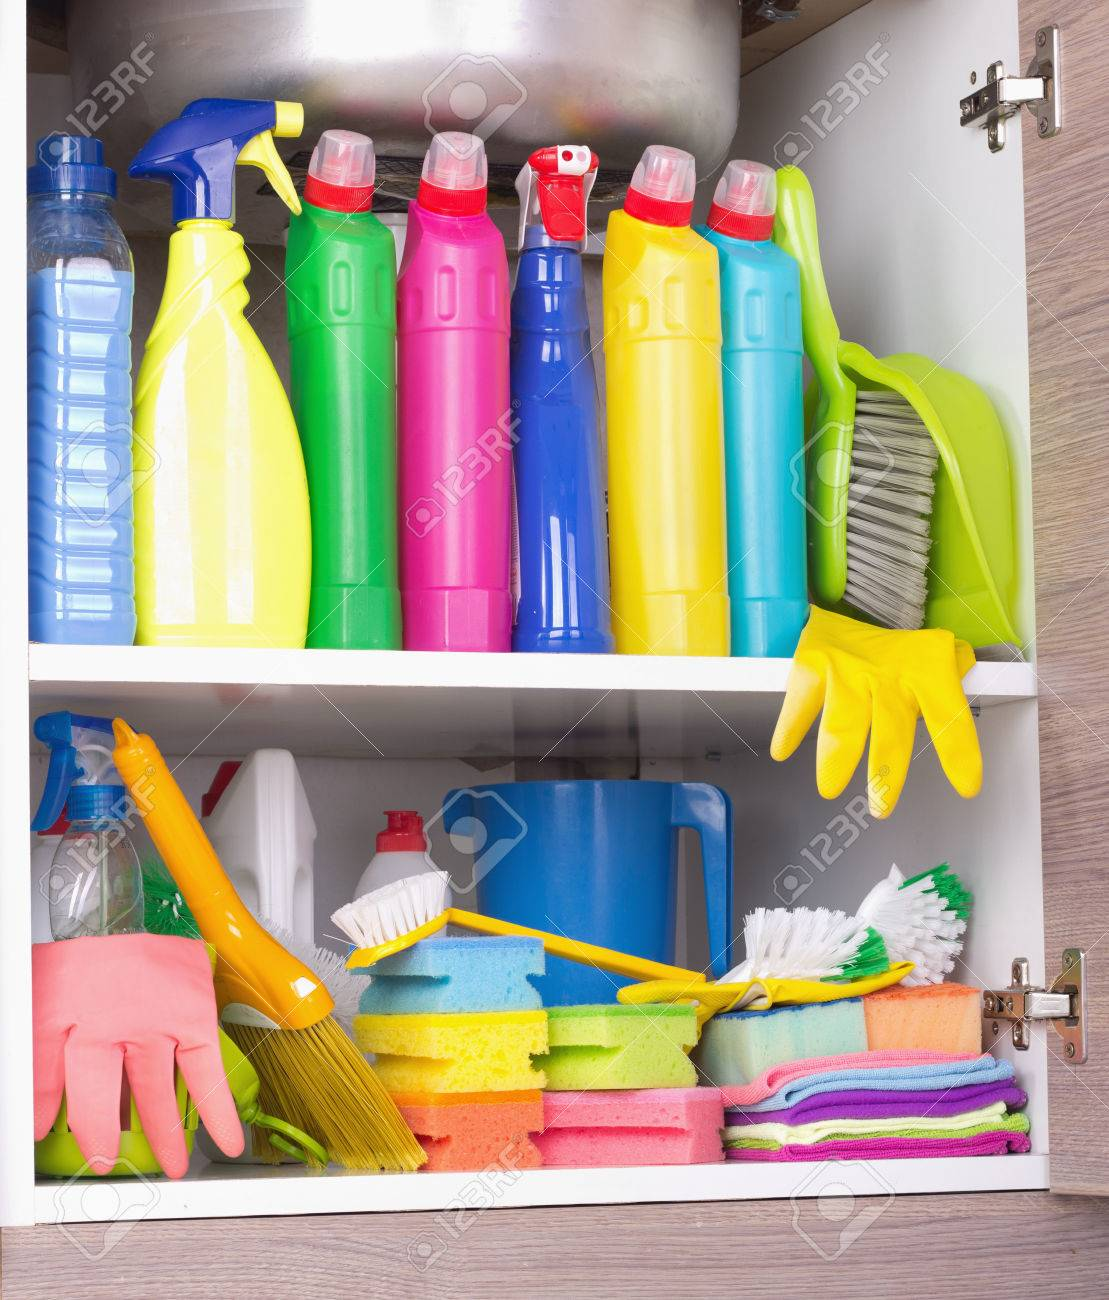 Cleaning products placed in kitchen cabinet under sink. Housekeeping..